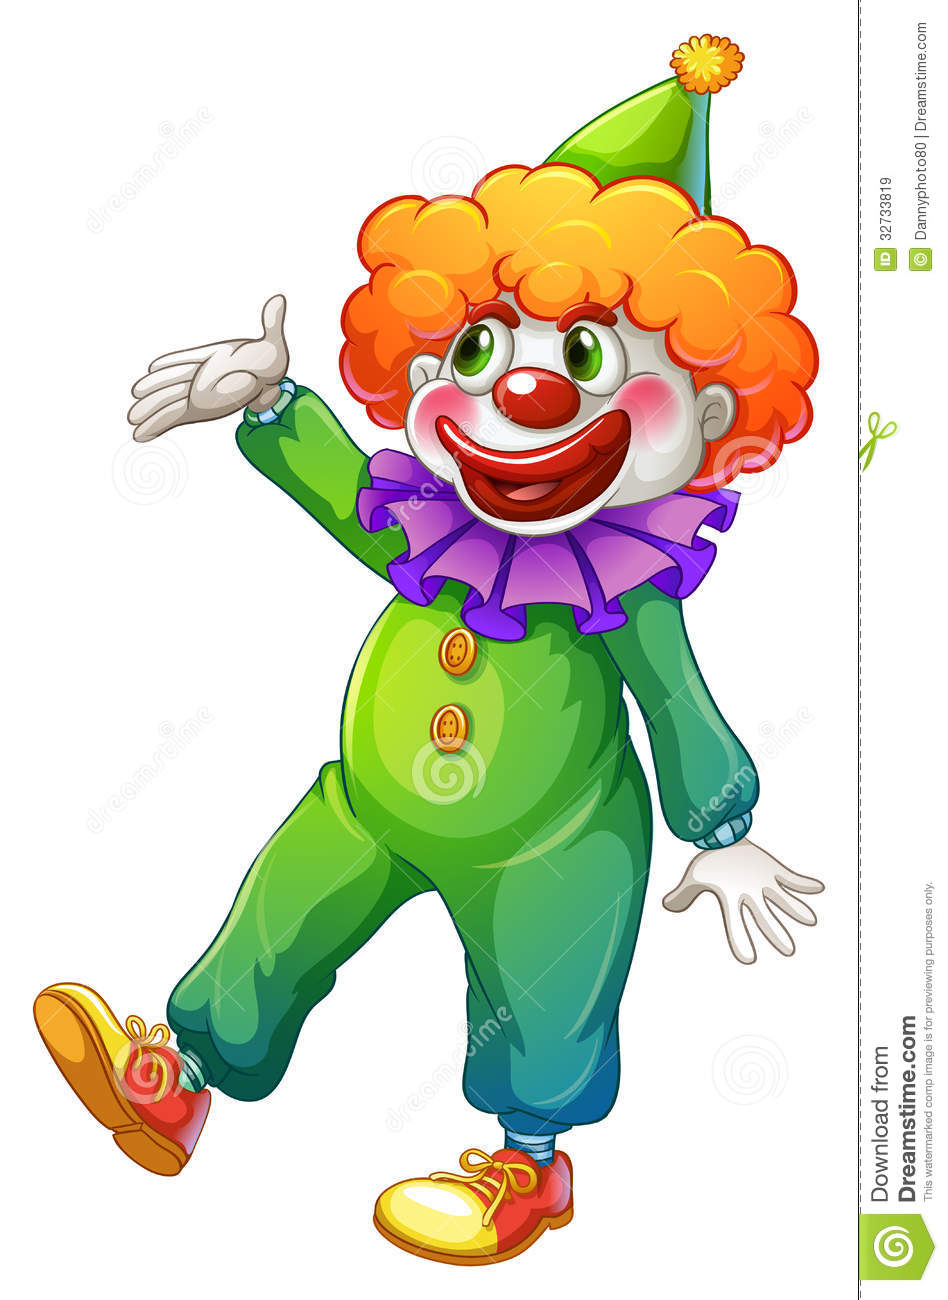 A clown wearing a green costume royalty free stock images for A clown fish